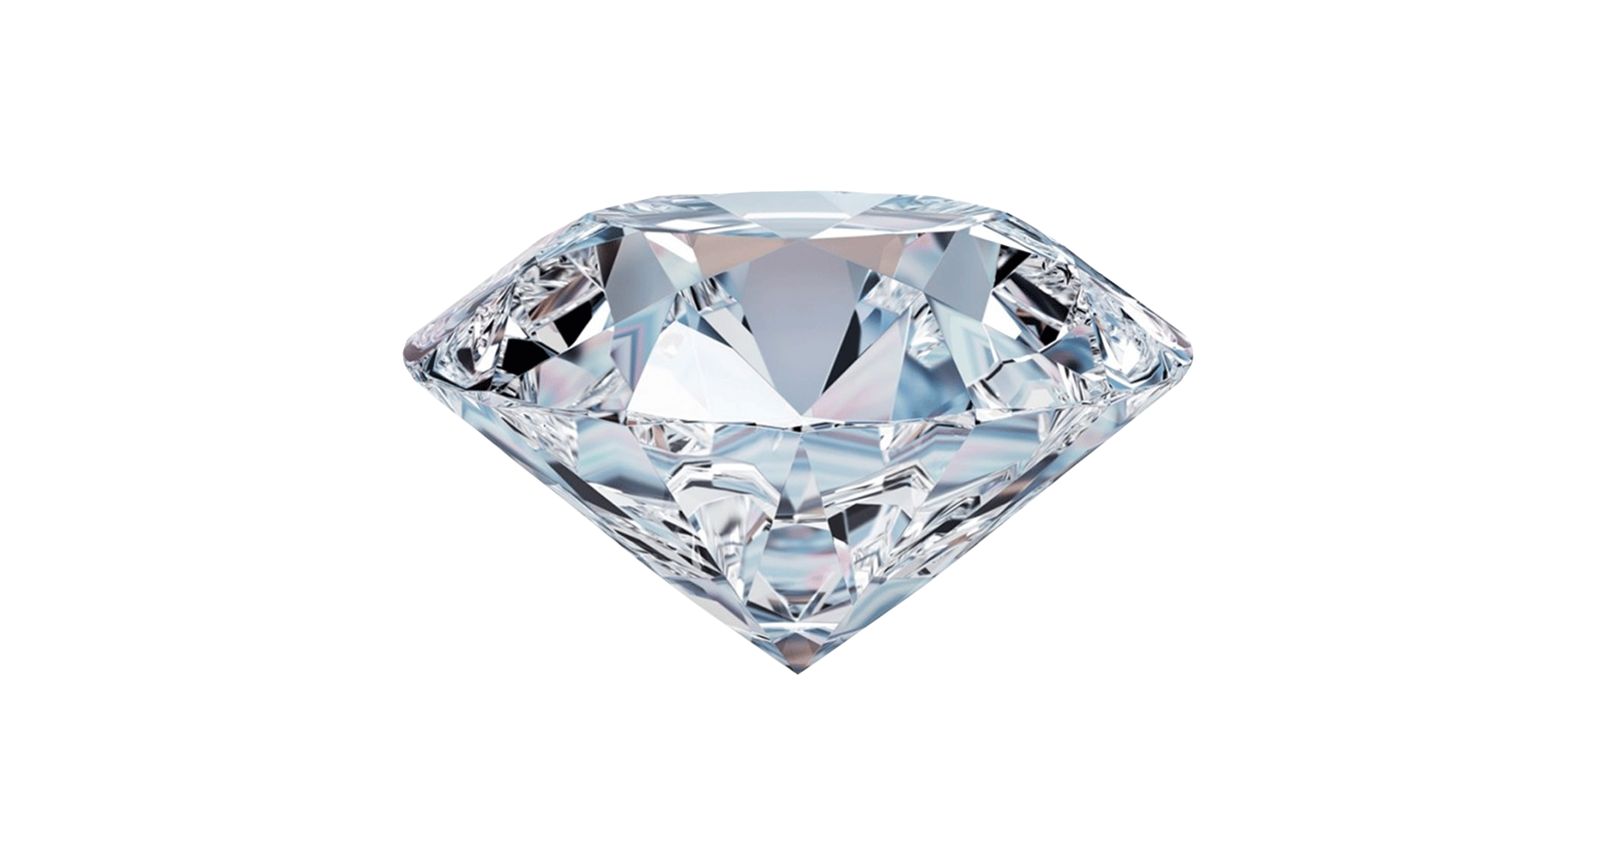 Traditional VS Fancy: Top Branded Diamond Cuts